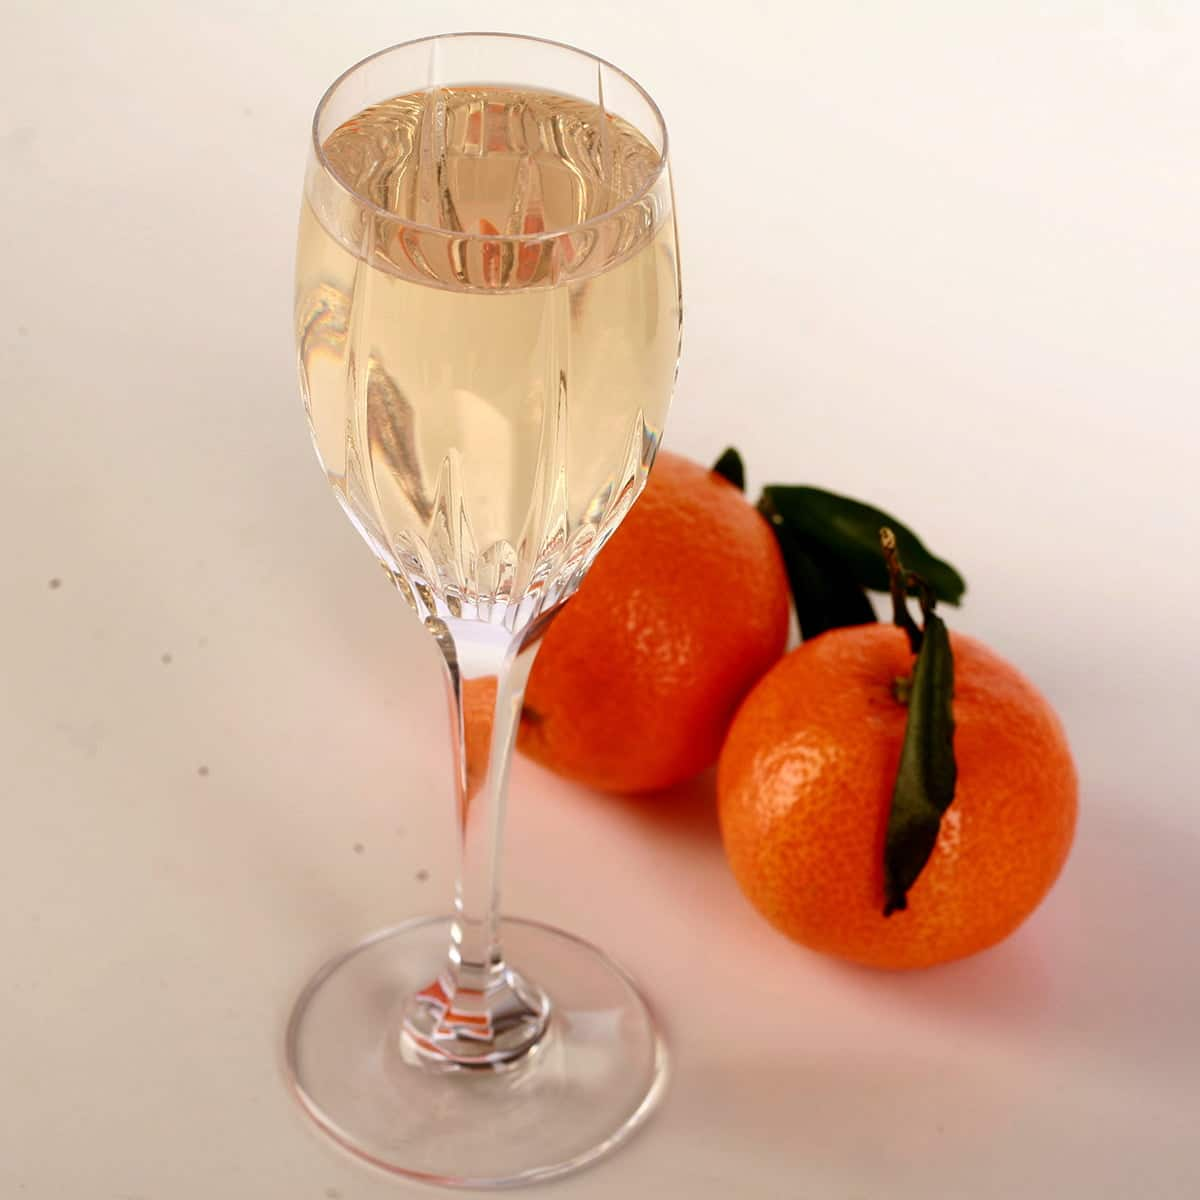 A glass of clementine mead is pictured with two clemetines at the base.